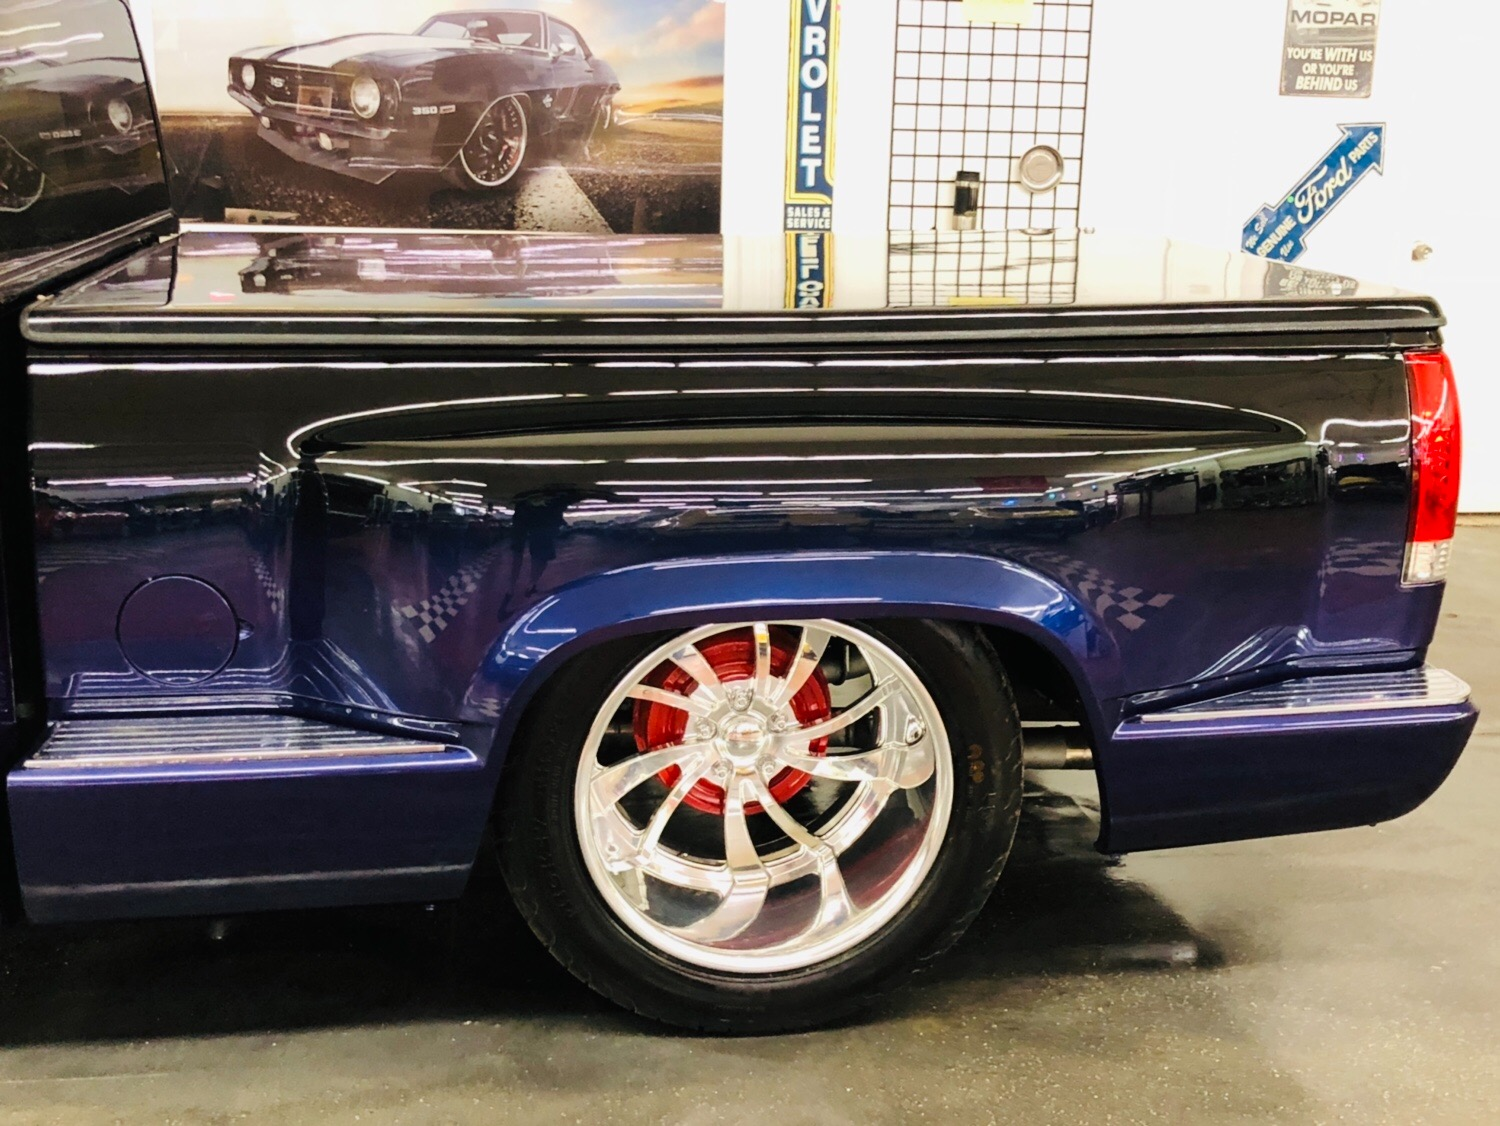 Used 1993 GMC Sierra -CUSTOM BUILD PRO STREET SUPERCHARGED SHOW TRUCK- | Mundelein, IL